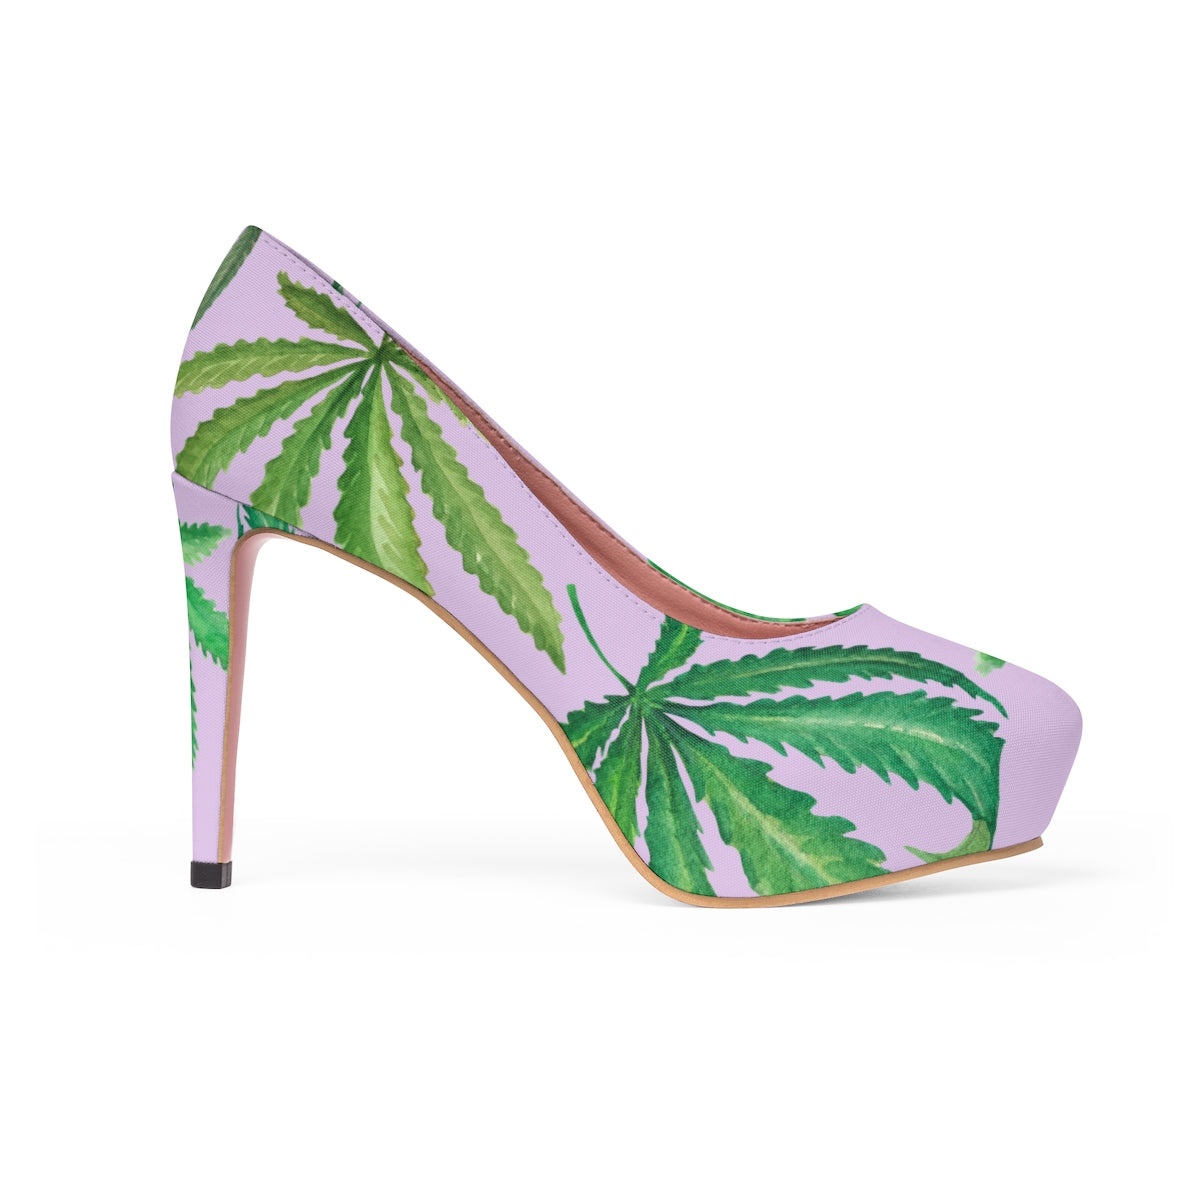 Leaves on Lavender Platform Heels